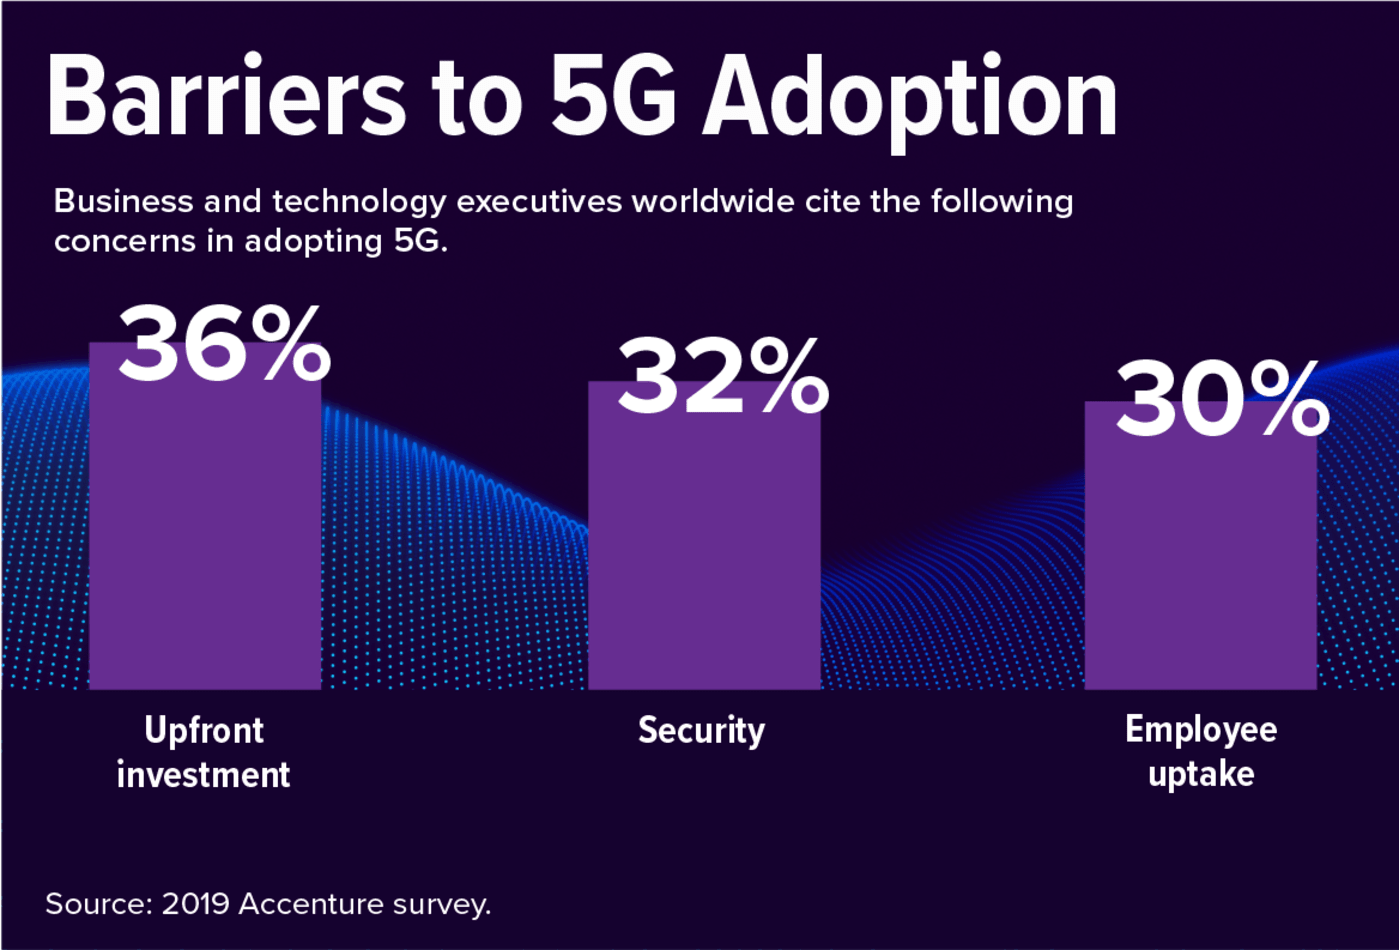 barriers to 5G adoption